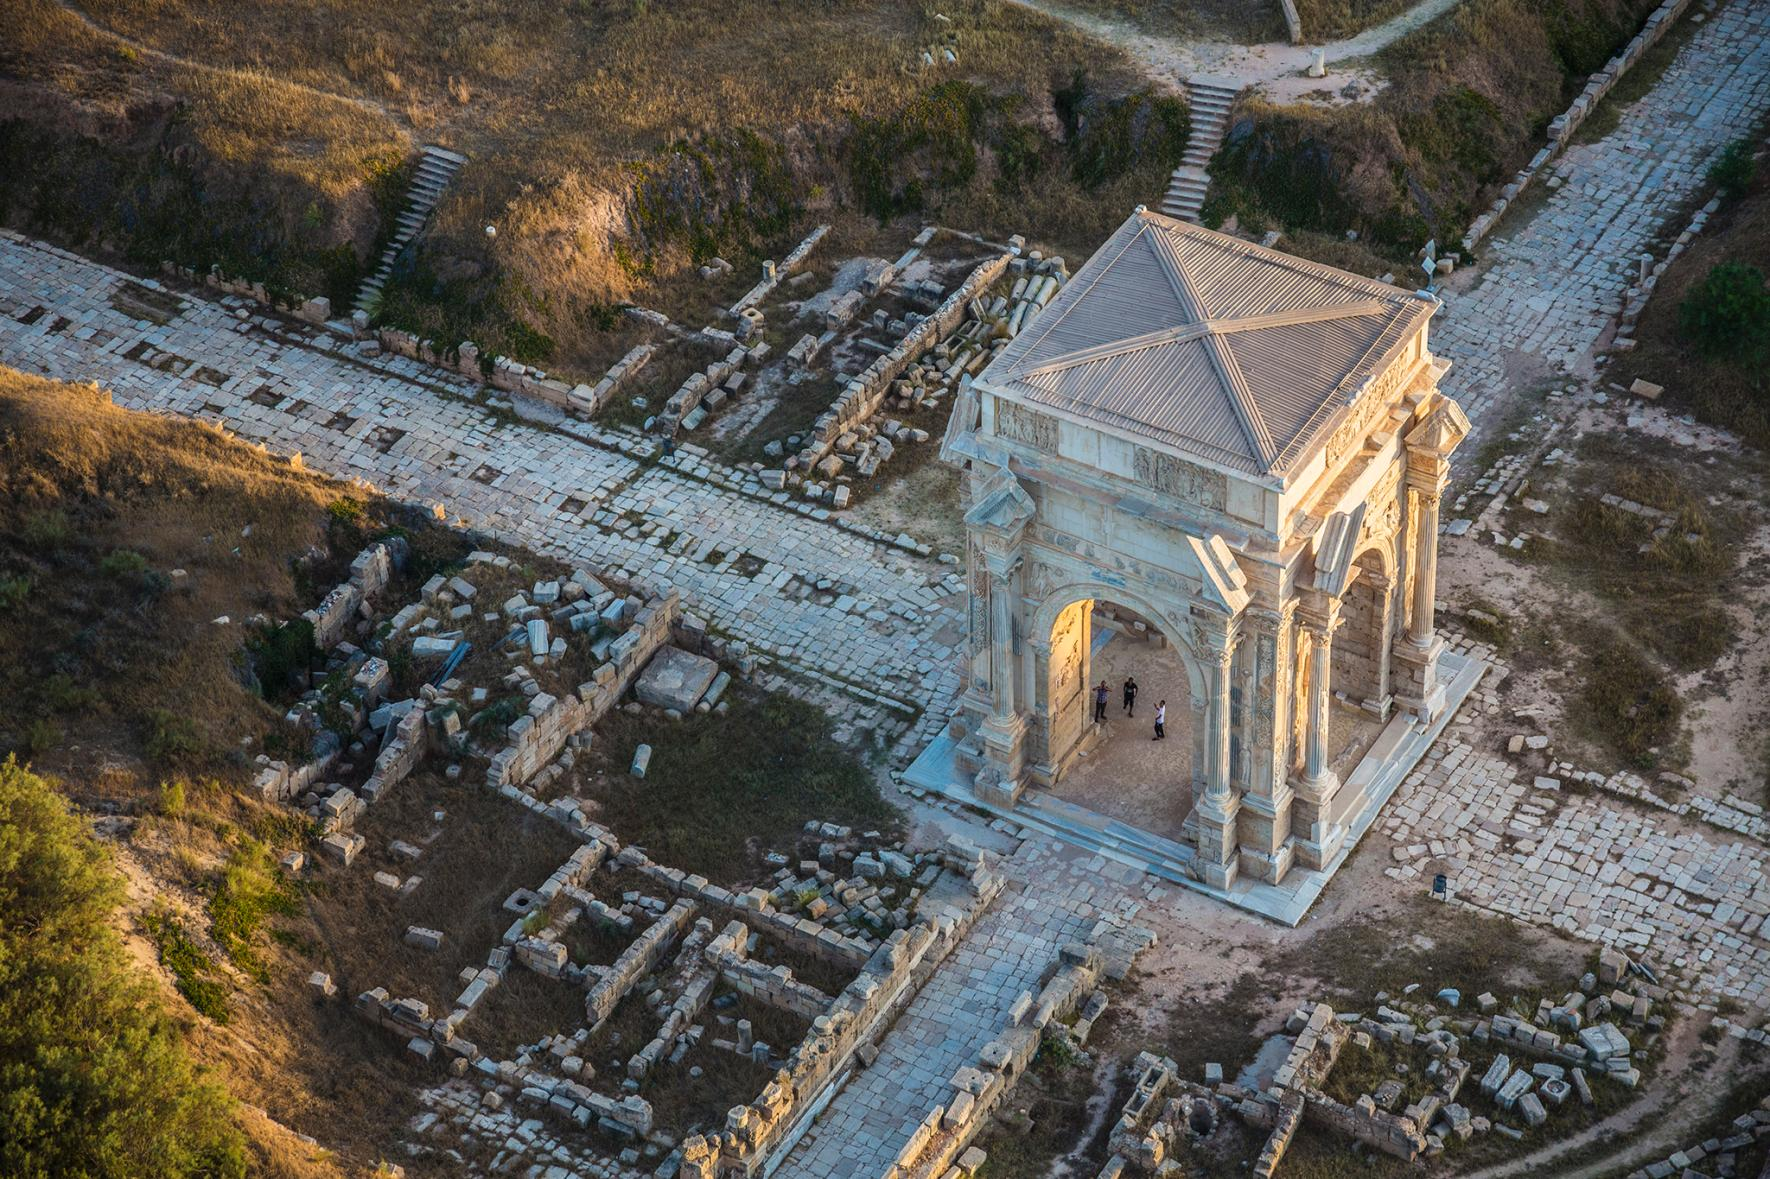 TOP 10 Archaeology Photos by Nat Geo Photographers